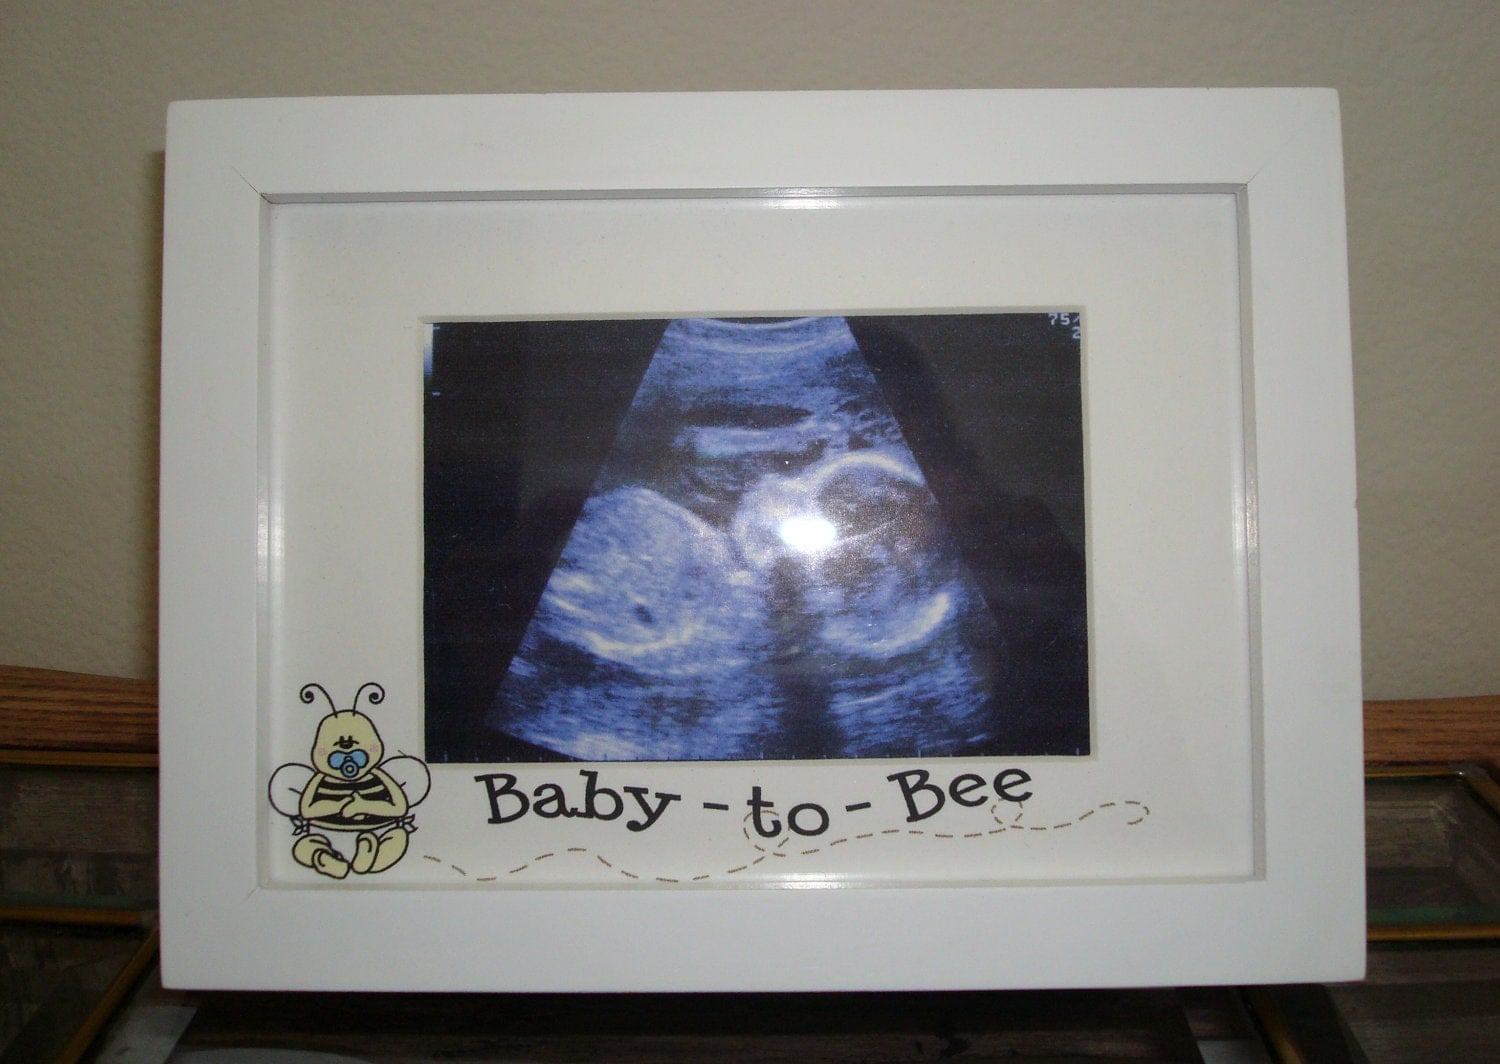 Baby to bee ultrasound picture frame pregnancy announcement zoom negle Image collections